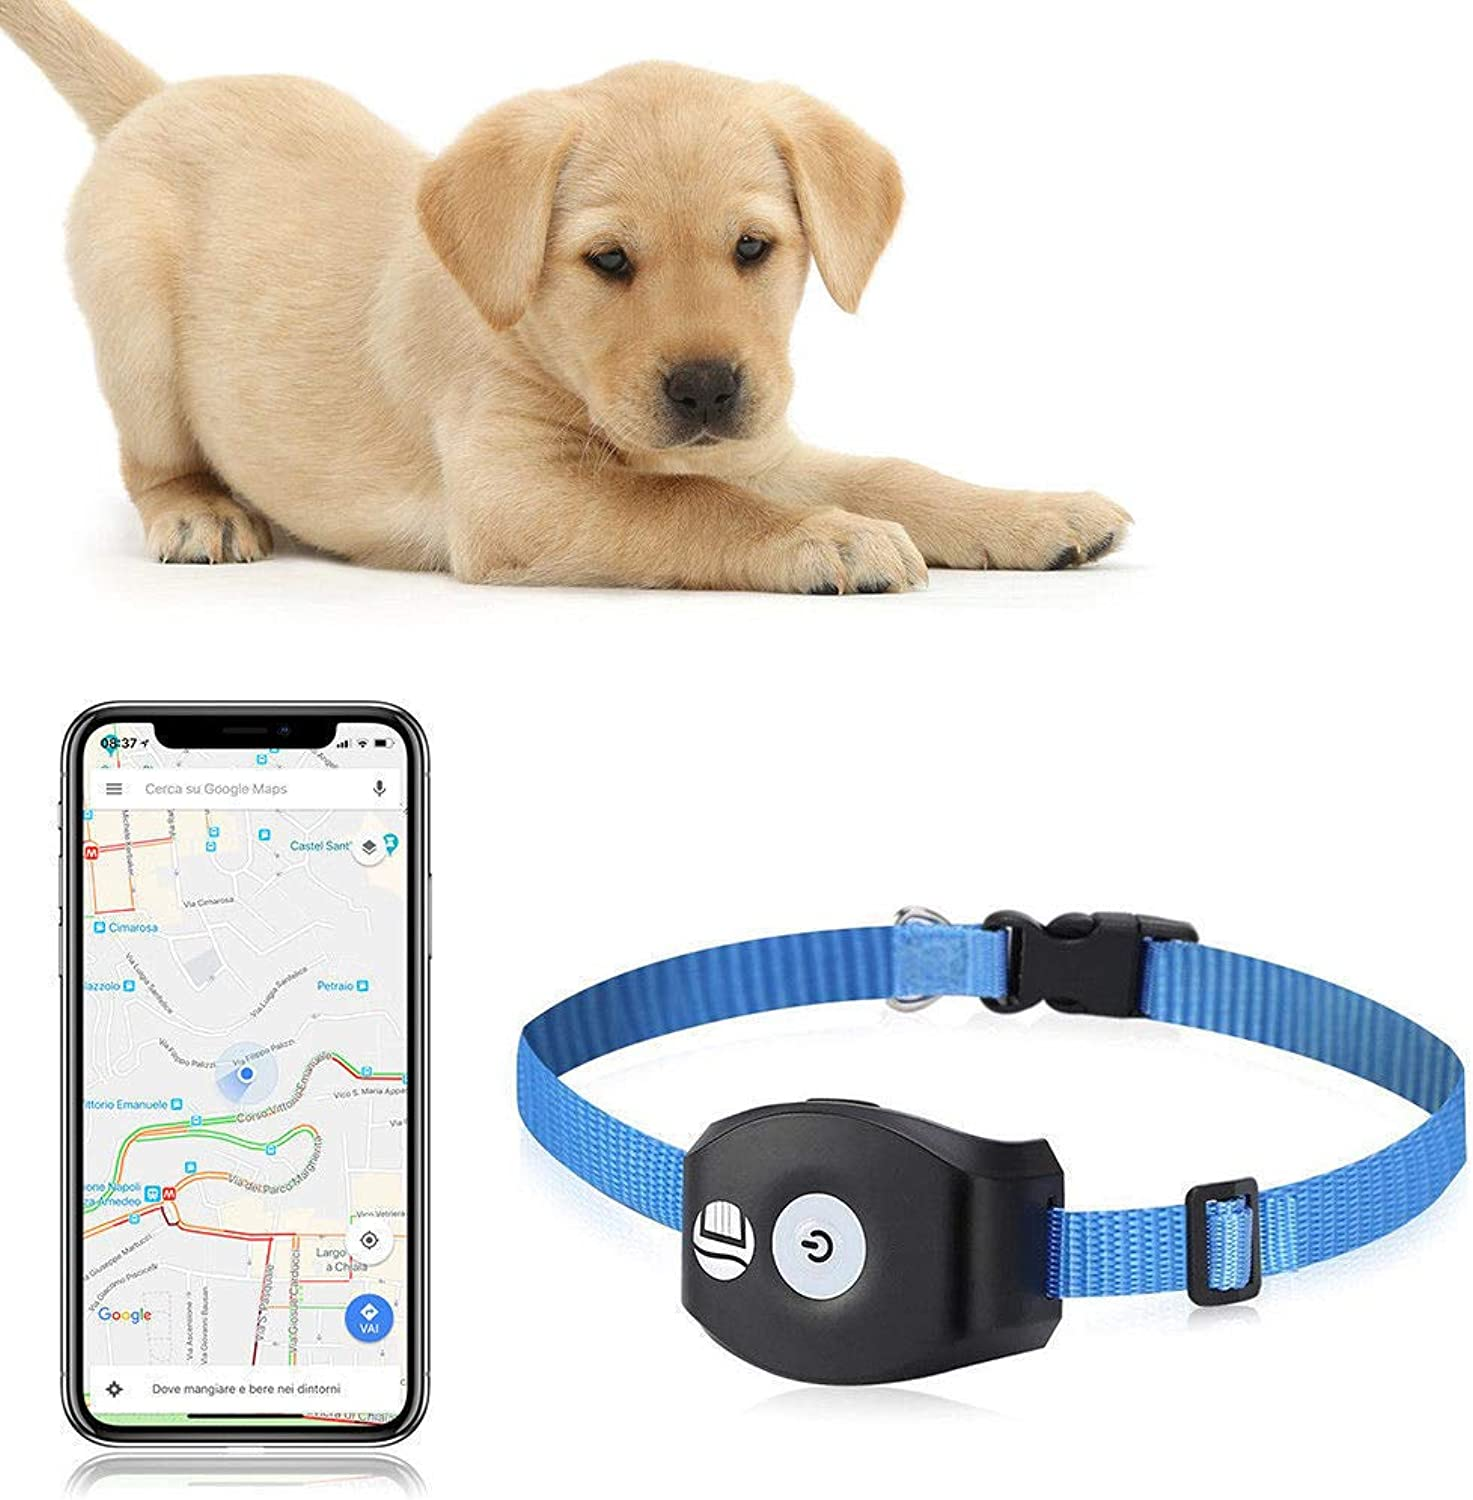 QNMM Mini Pet Smart AntiLost Tracking Device Waterproof Pet Finder Collar Waterproof Alarm Realtime Tracking Voice monitor